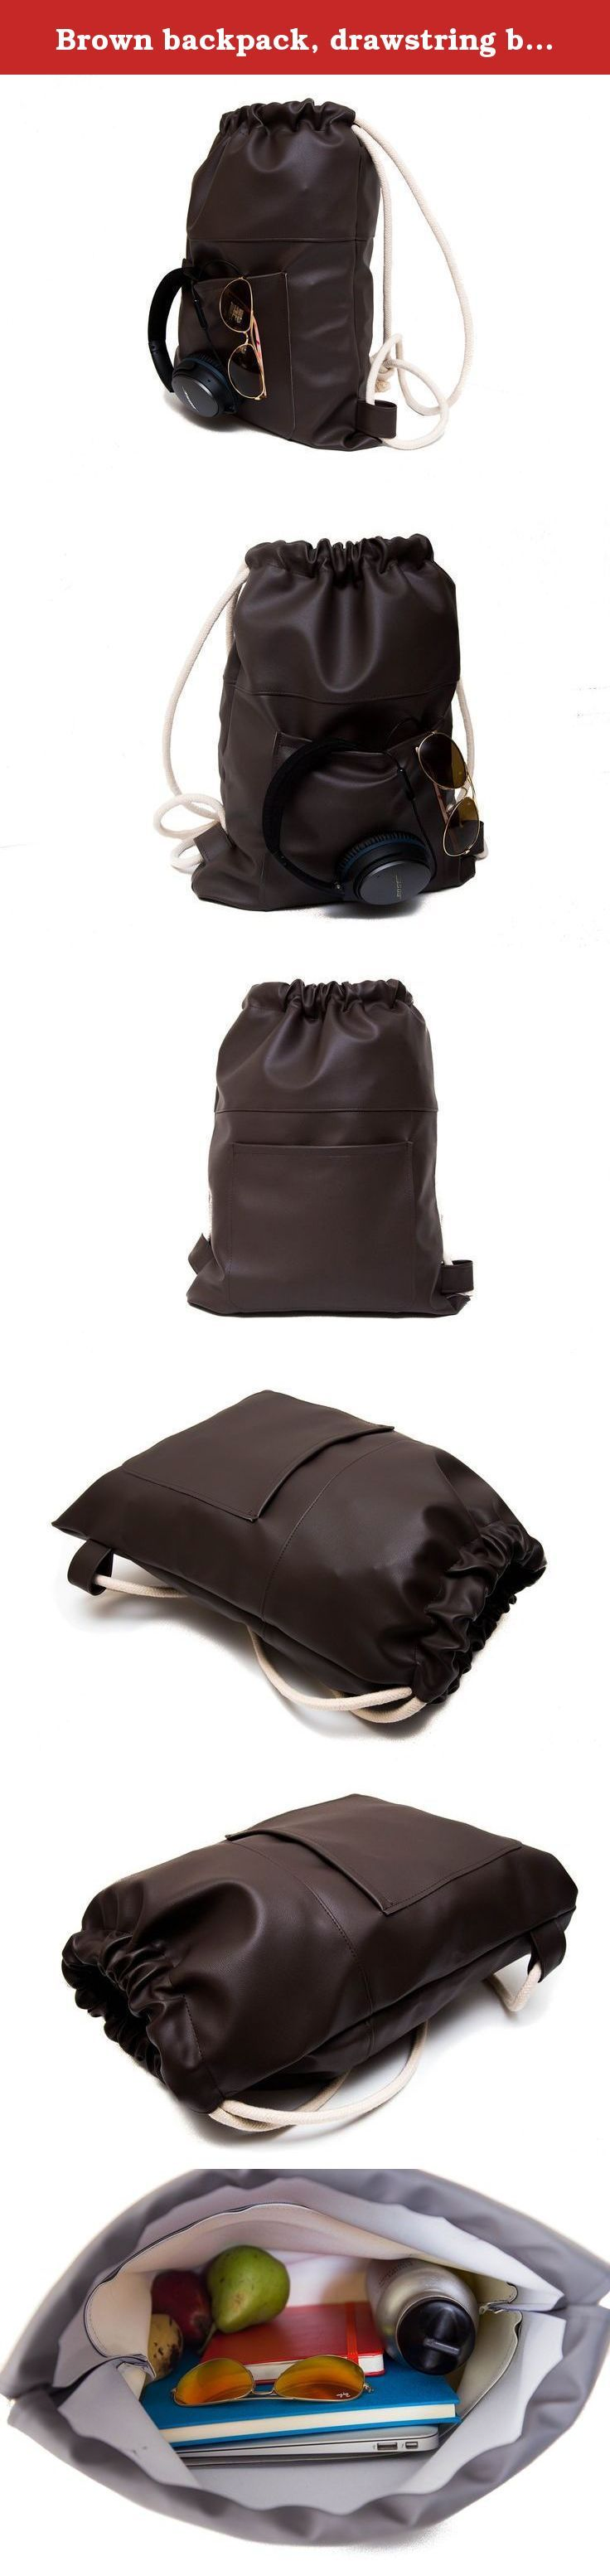 """Brown backpack, drawstring bag, Sport bags, sack bag, Rucksack Backpack, hipsters bags, lunch bag, men backpack, leatherette. The bag is crafted from top Italian fabrics and features thick & soft cotton rope as the drawstring closure. The bag is big enough so it can contain up to 15"""" laptop on top on other things, so it is great for either school, gym, daily life, or even late night events. Dimensions: Width: 35 cm / 13.5 Inch Height: 46 cm / 18 Inch Each bag has an external pocket for a..."""